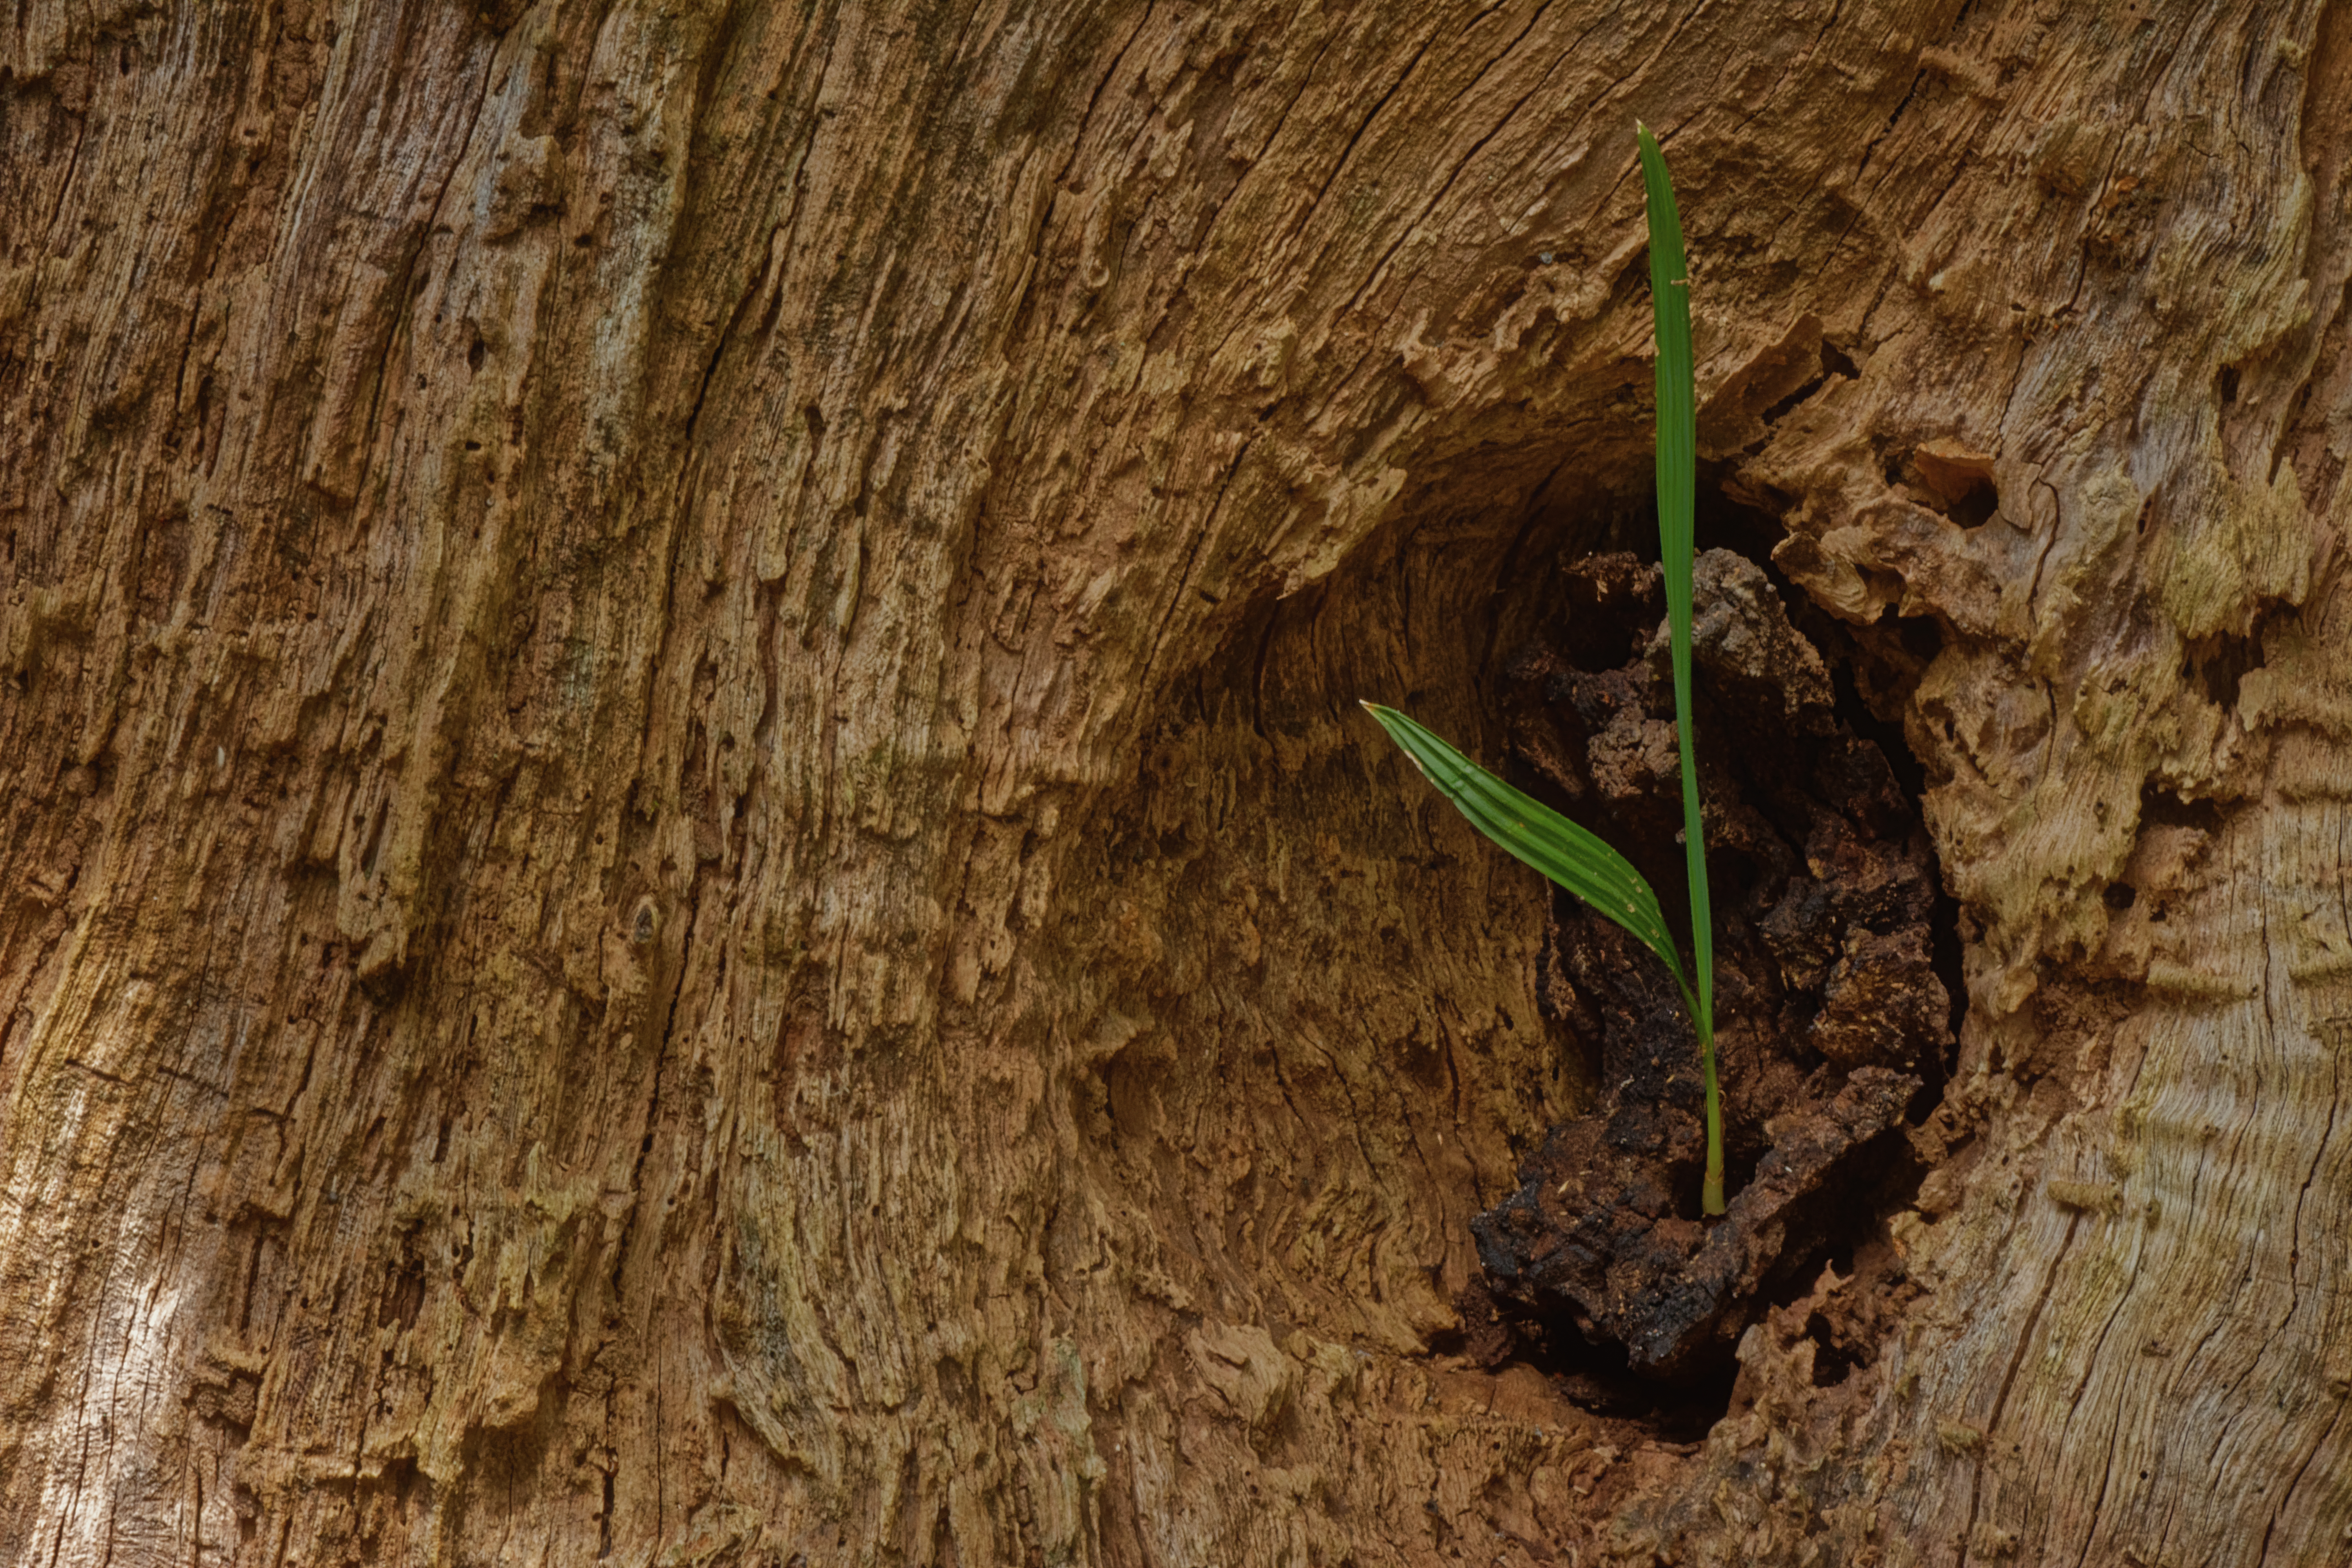 New growth in a tree stump - 0168